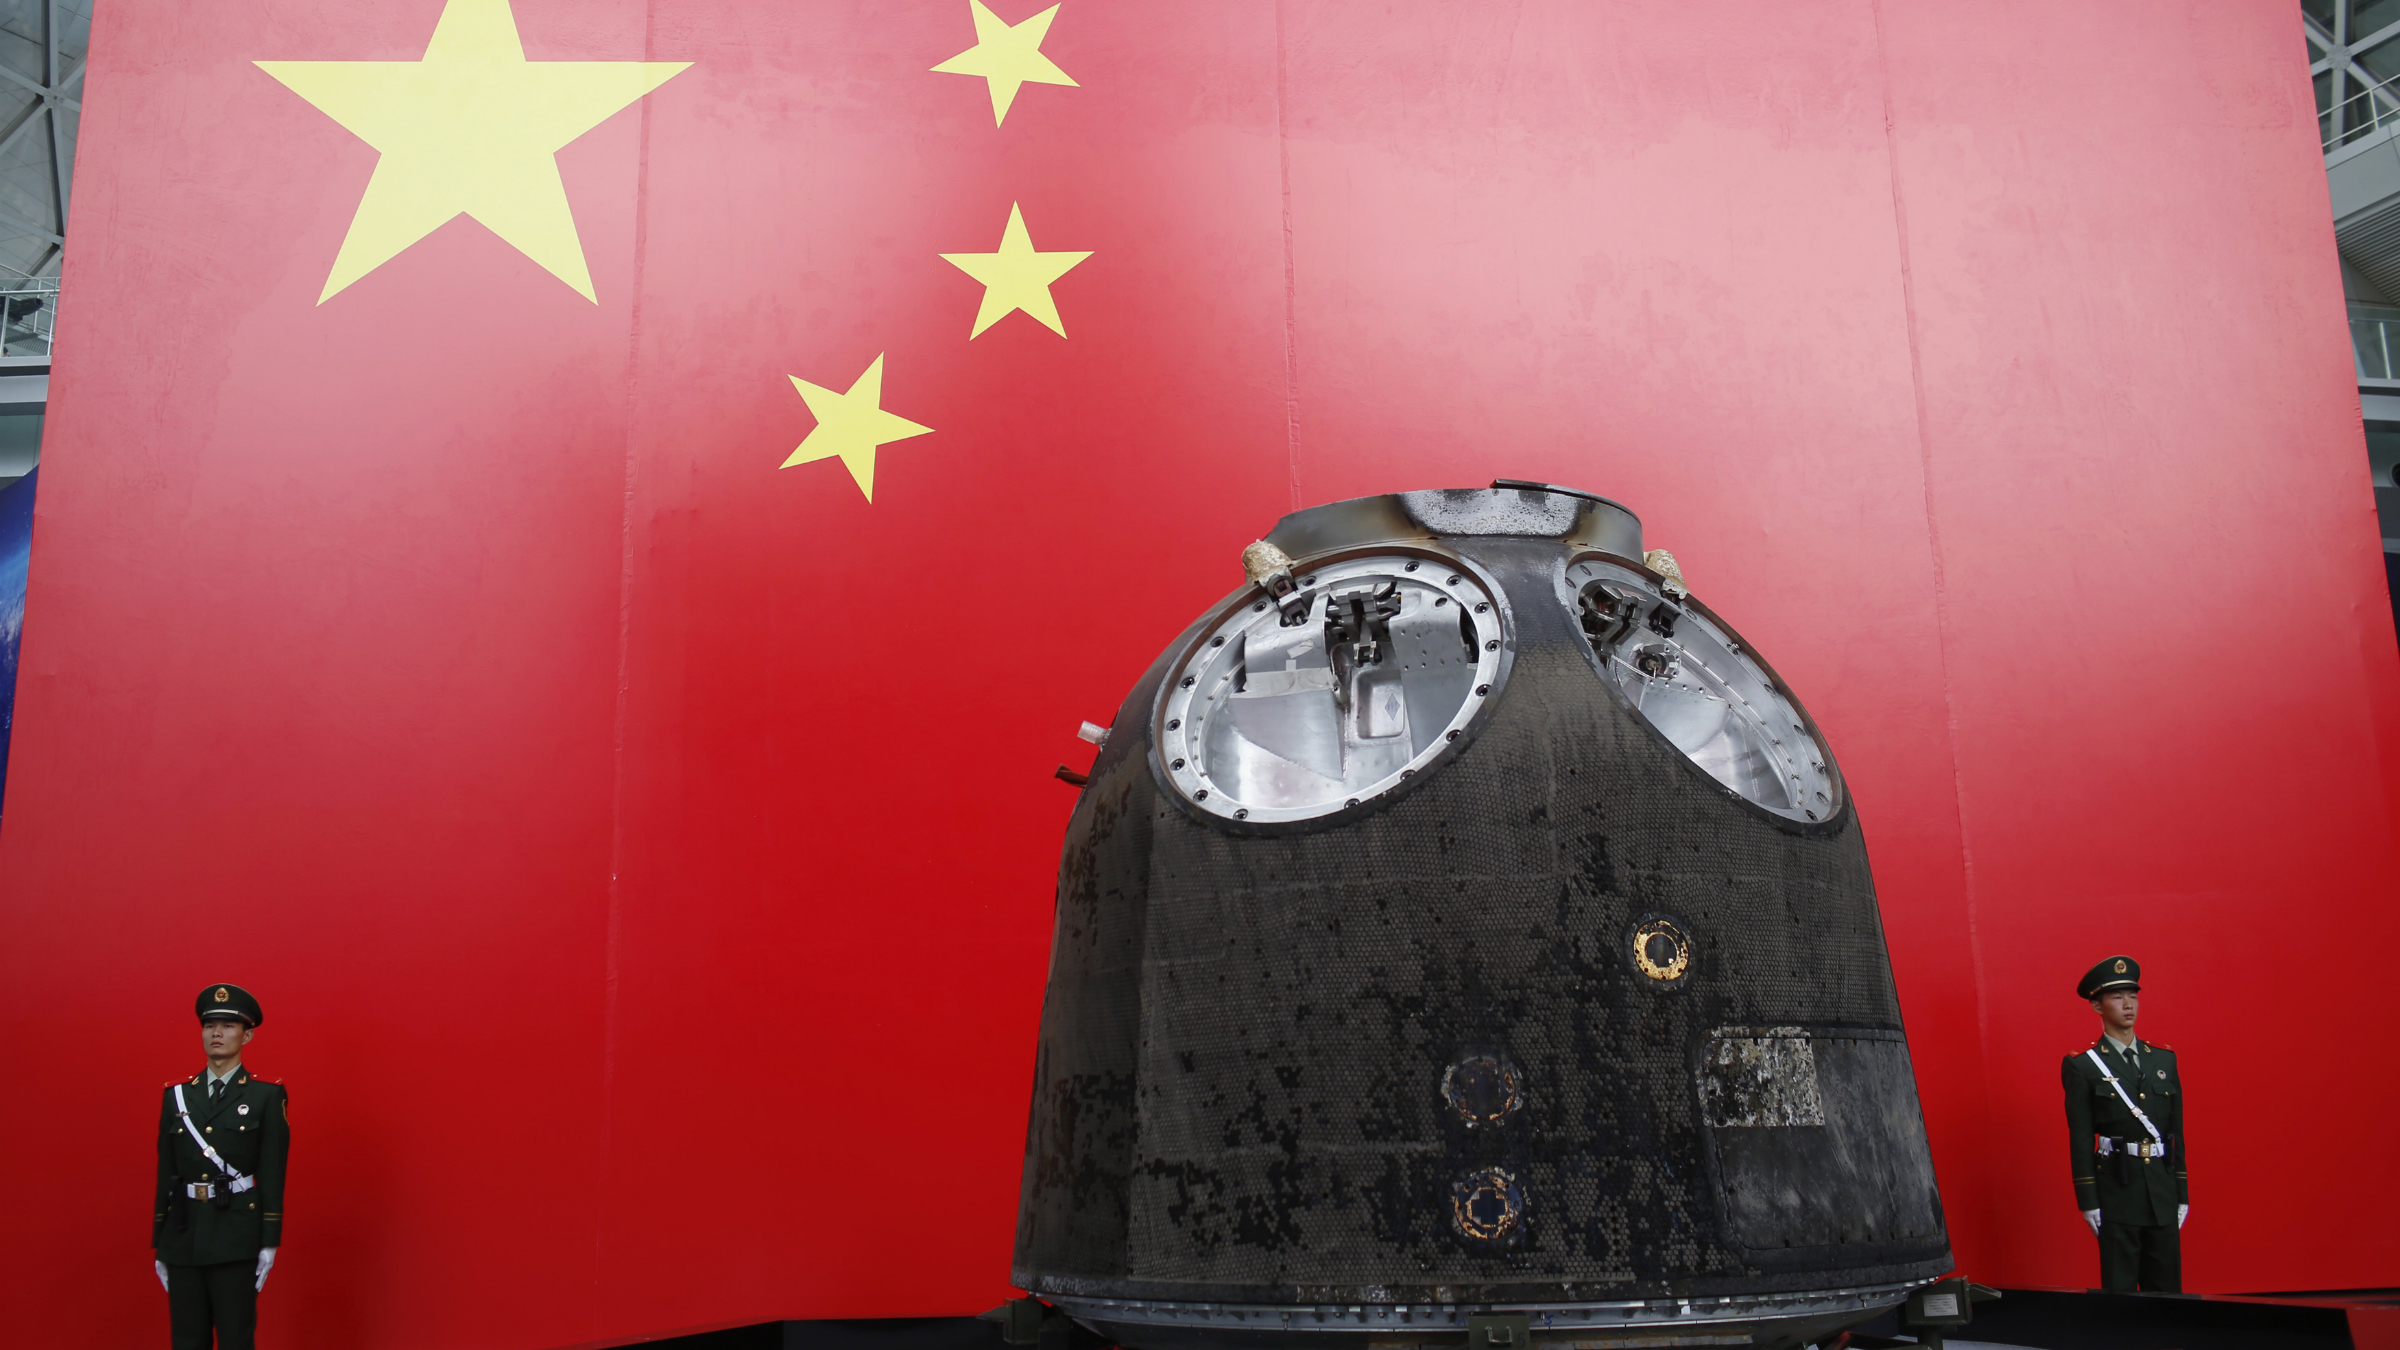 """The return module of the Shenzhou-9 is displayed during """"China's manned spacecraft"""", at an exhibition related to Shenzhou-9 at Shanghai Science and Technology Museum in Shanghai November 2, 2012. REUTERS/Aly Song"""